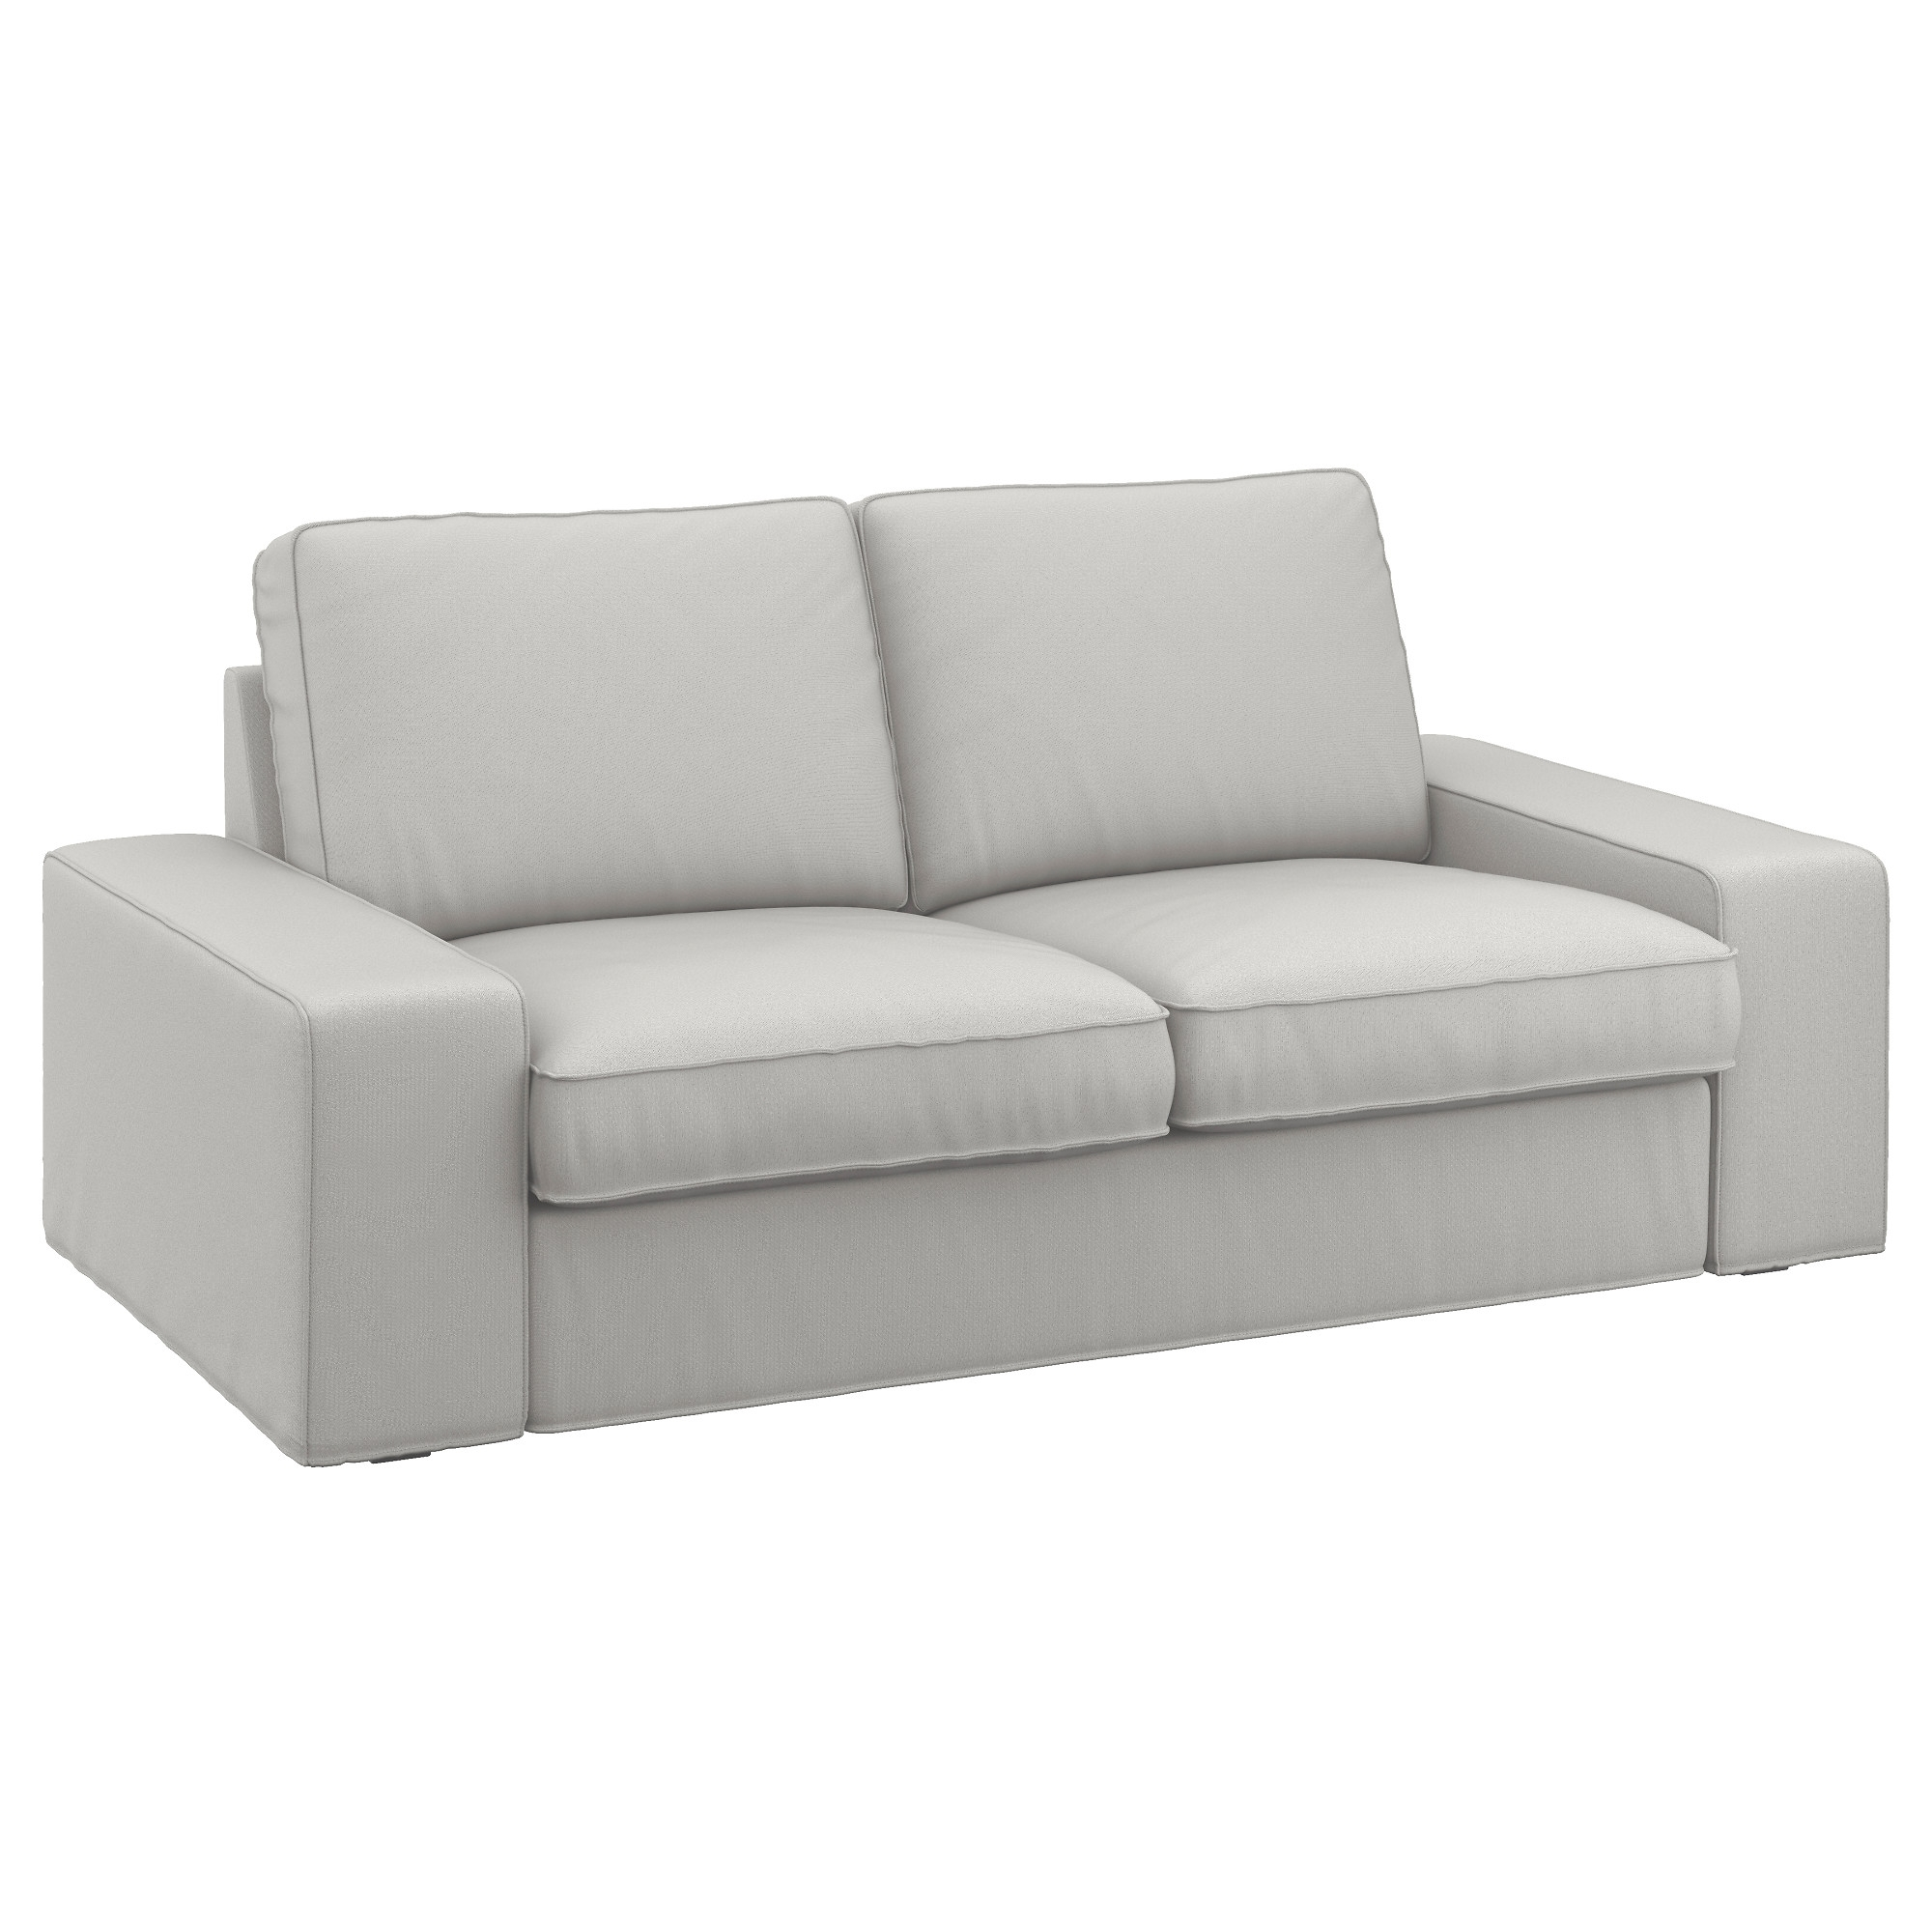 Most Up To Date Ikea Two Seater Sofas Intended For Kivik Two Seat Sofa Ramna Light Grey – Ikea (View 8 of 15)